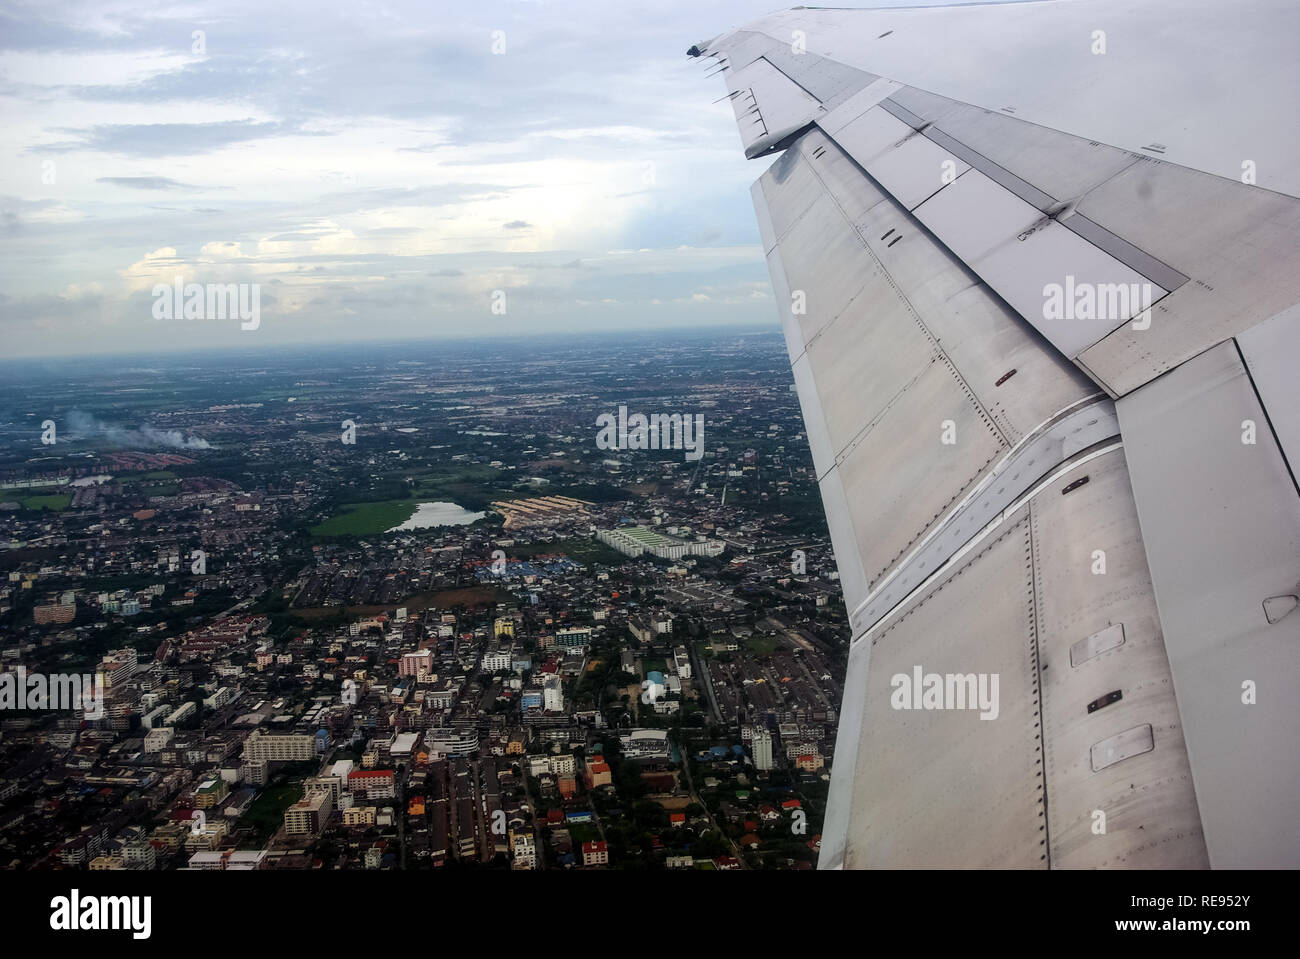 flying over Thailand, the view of Thailand from the window of the plane. Stock Photo